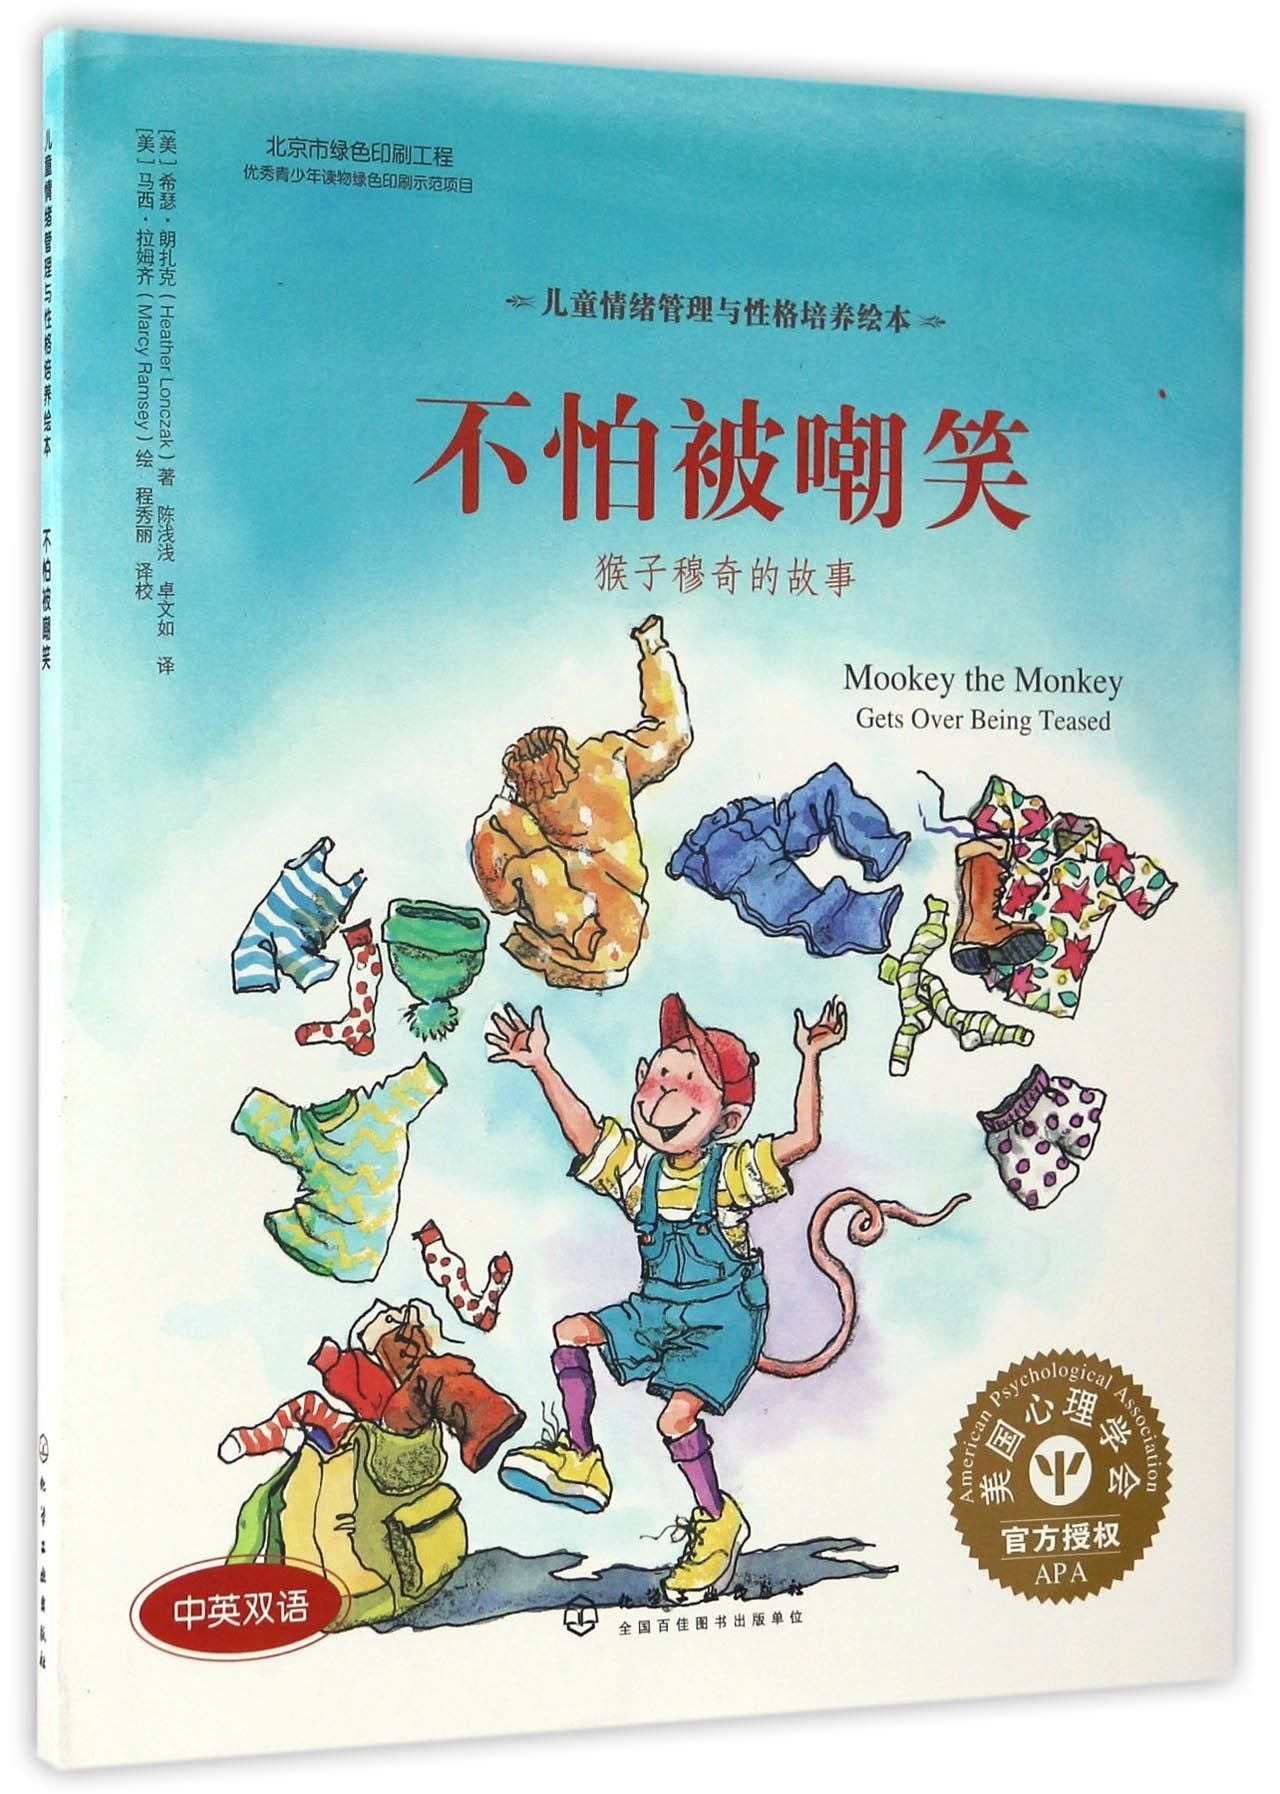 Download Mookey the Monkey Gets Over Being Teased ebook